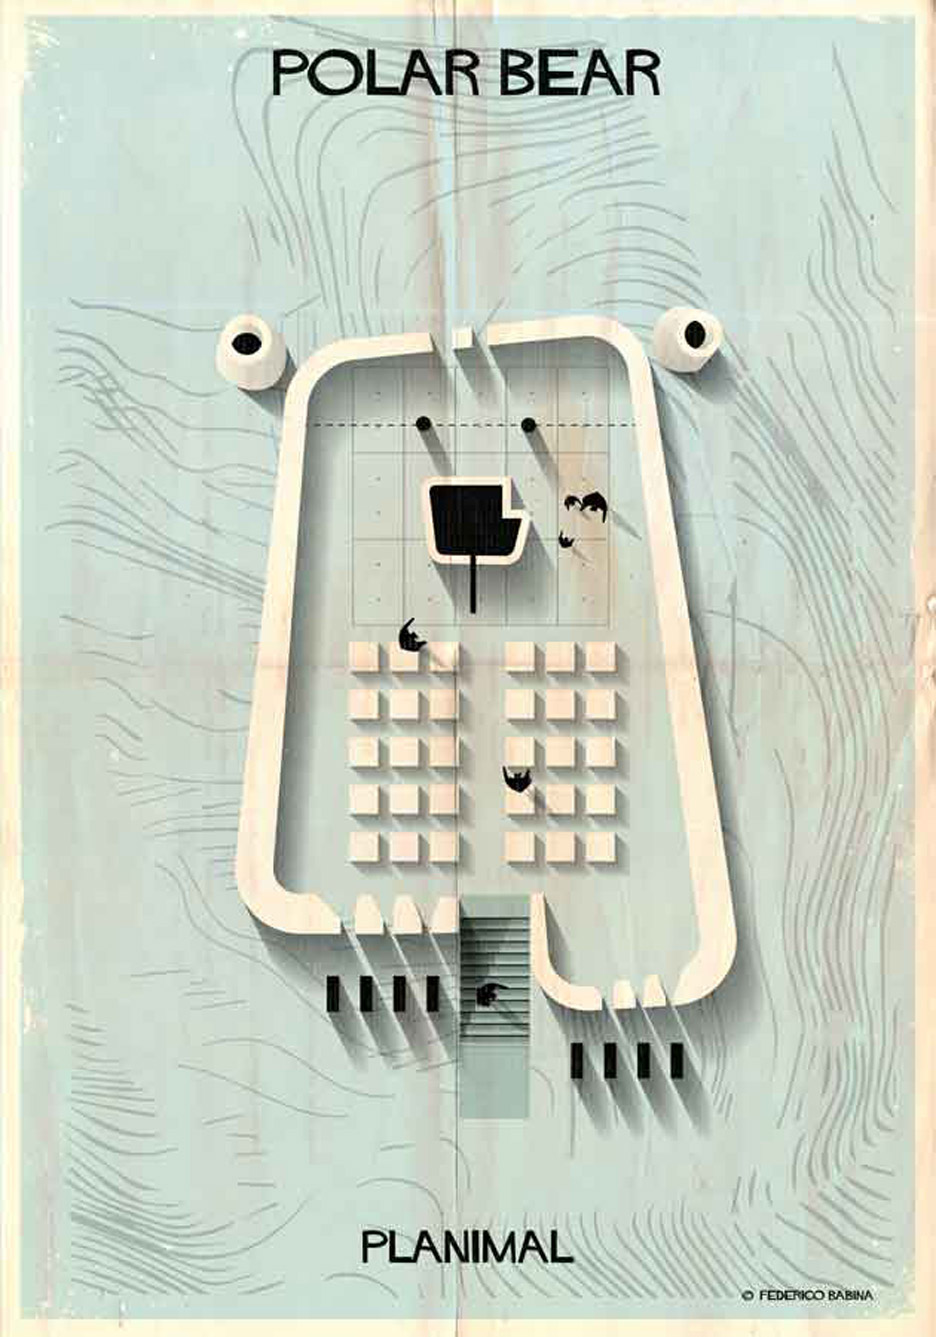 planimals-federico-babina-architecture-illustrations-design-_dezeen_936_col_14